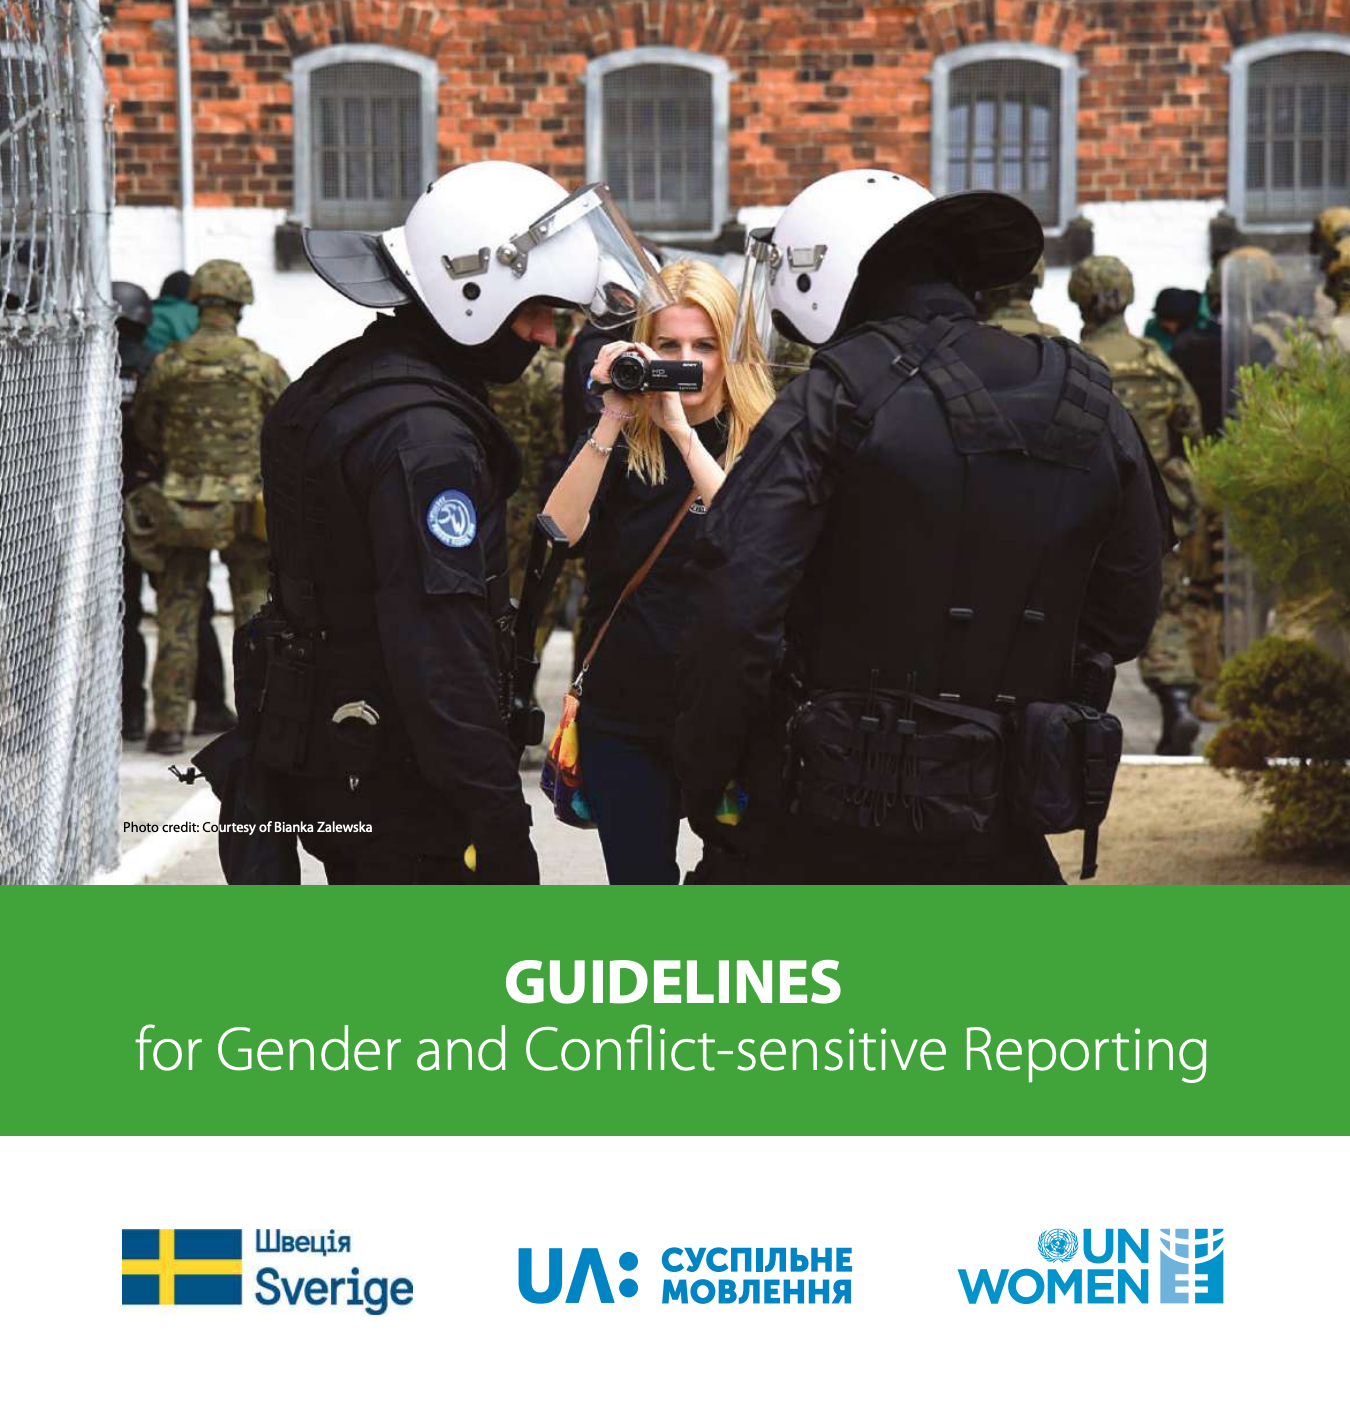 Guidelines for Gender and Conflict-sensitive Reporting